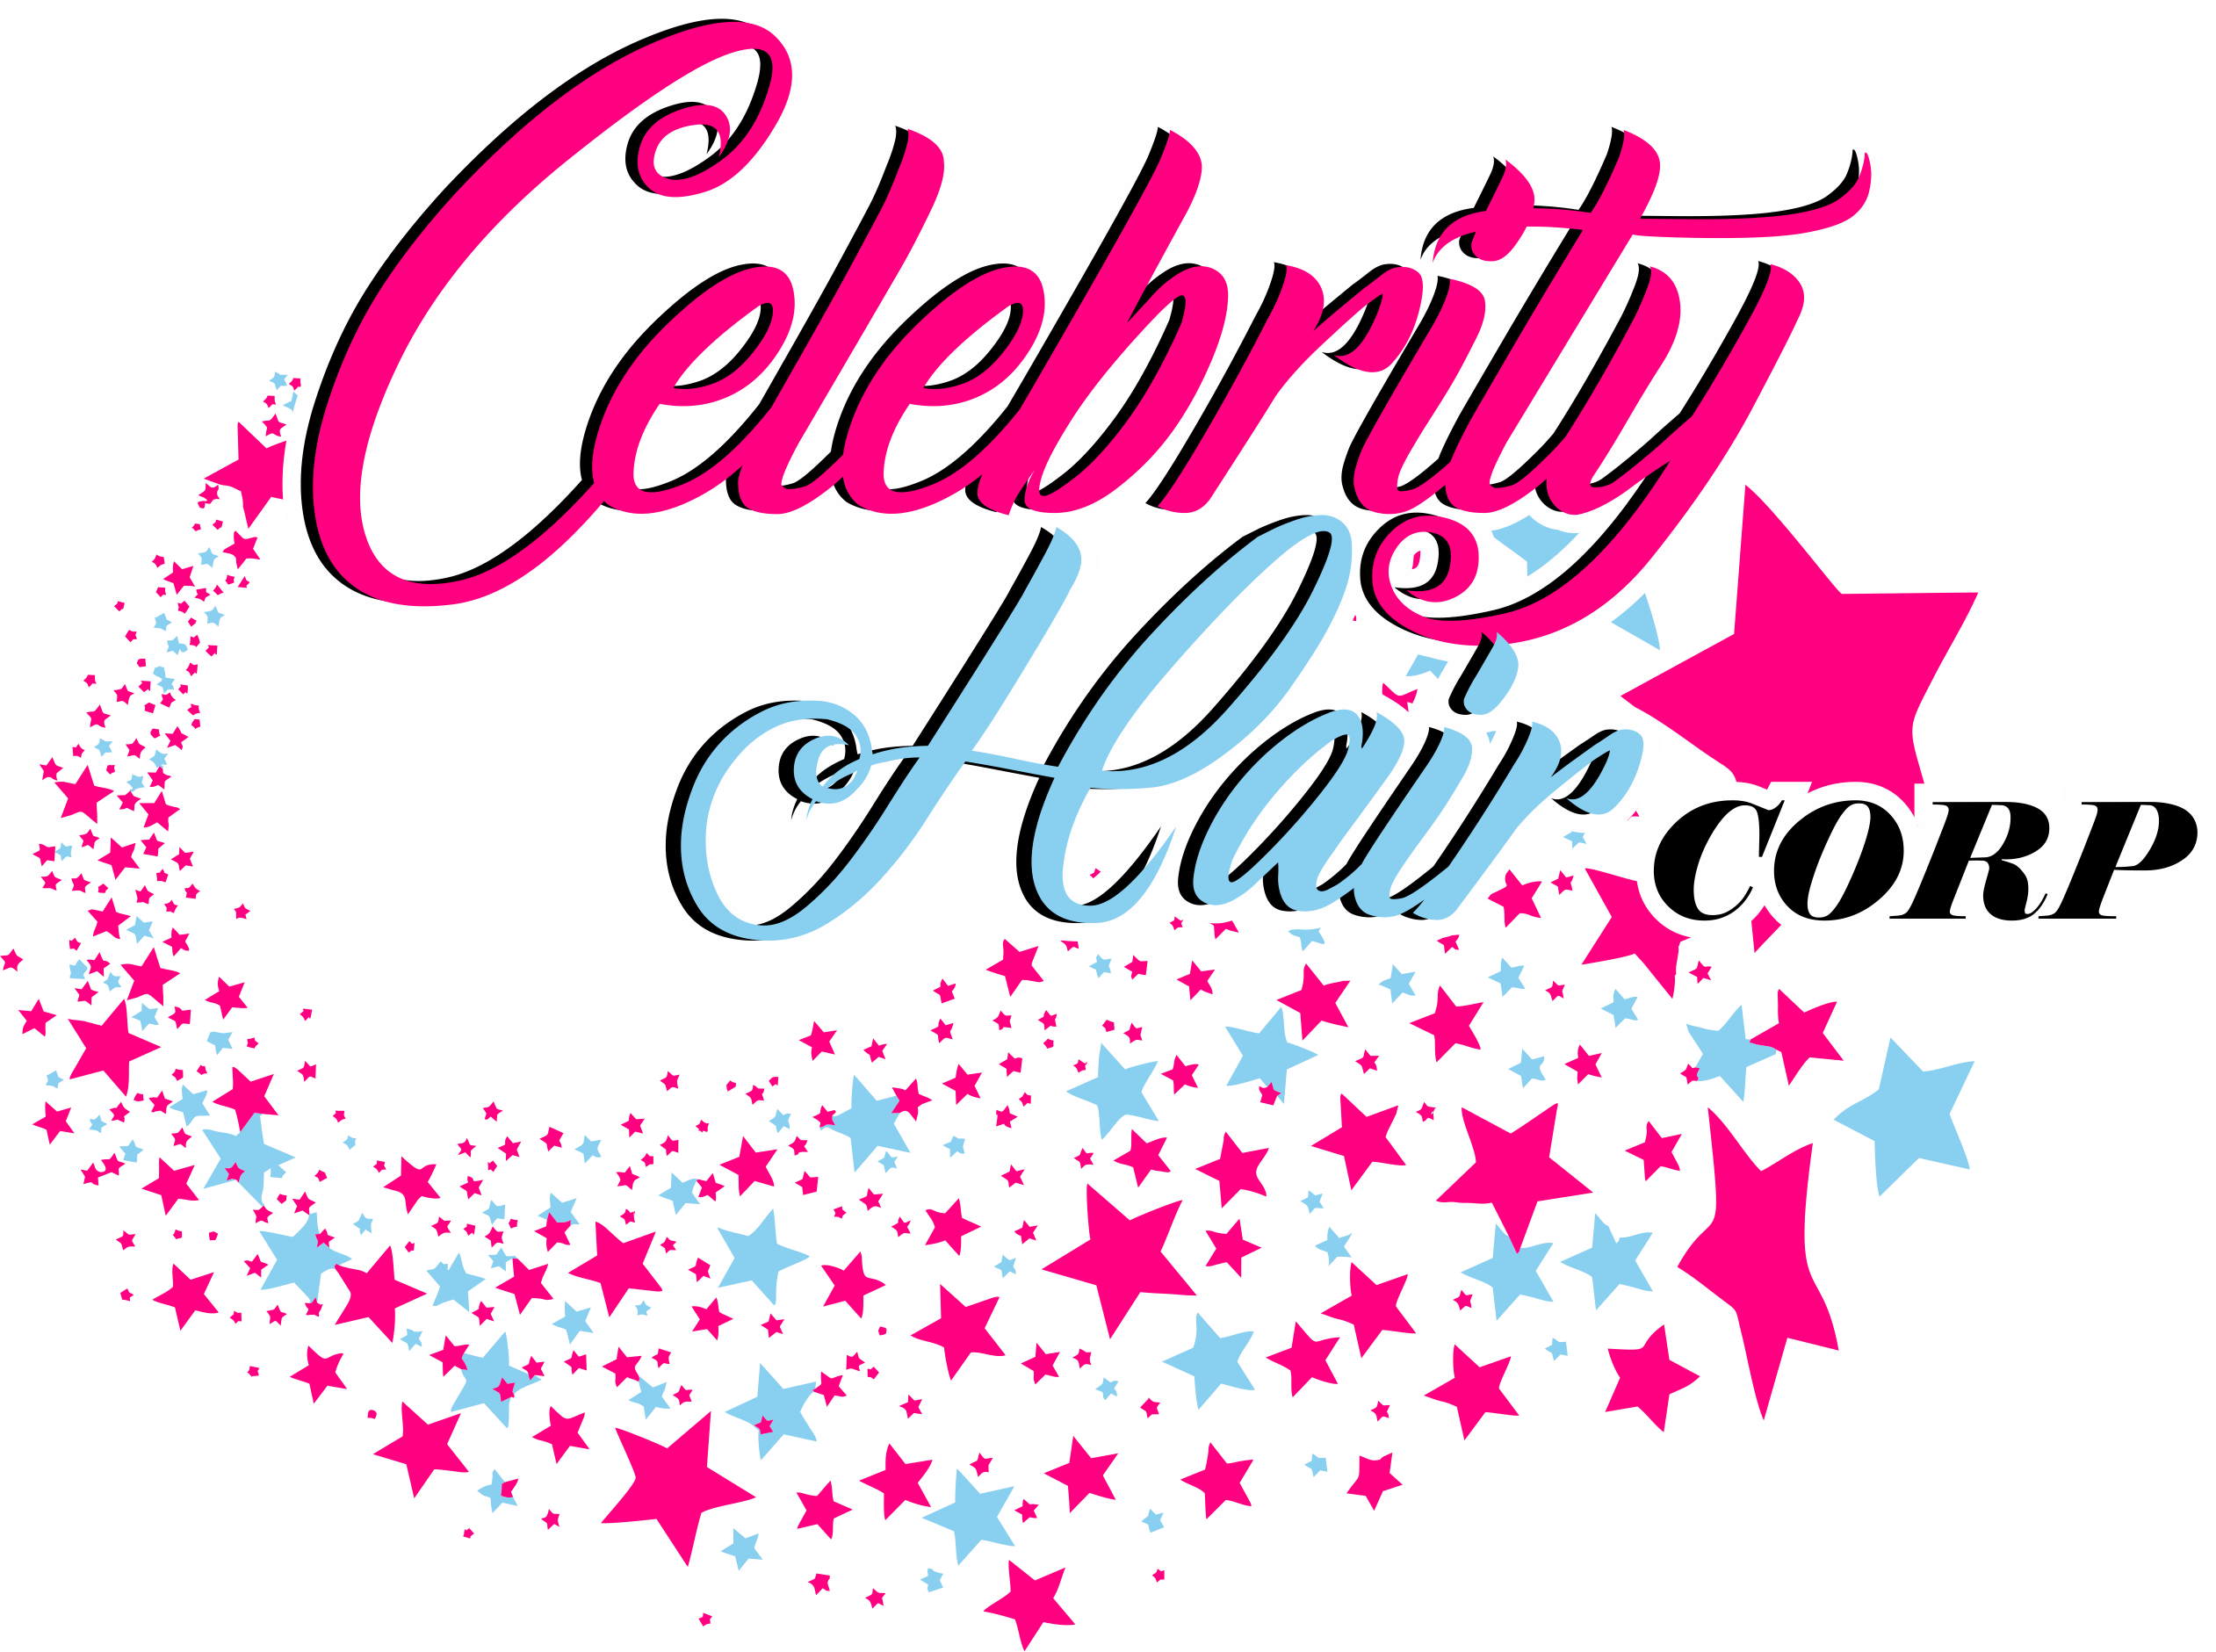 CelebrityHairCorp's account image